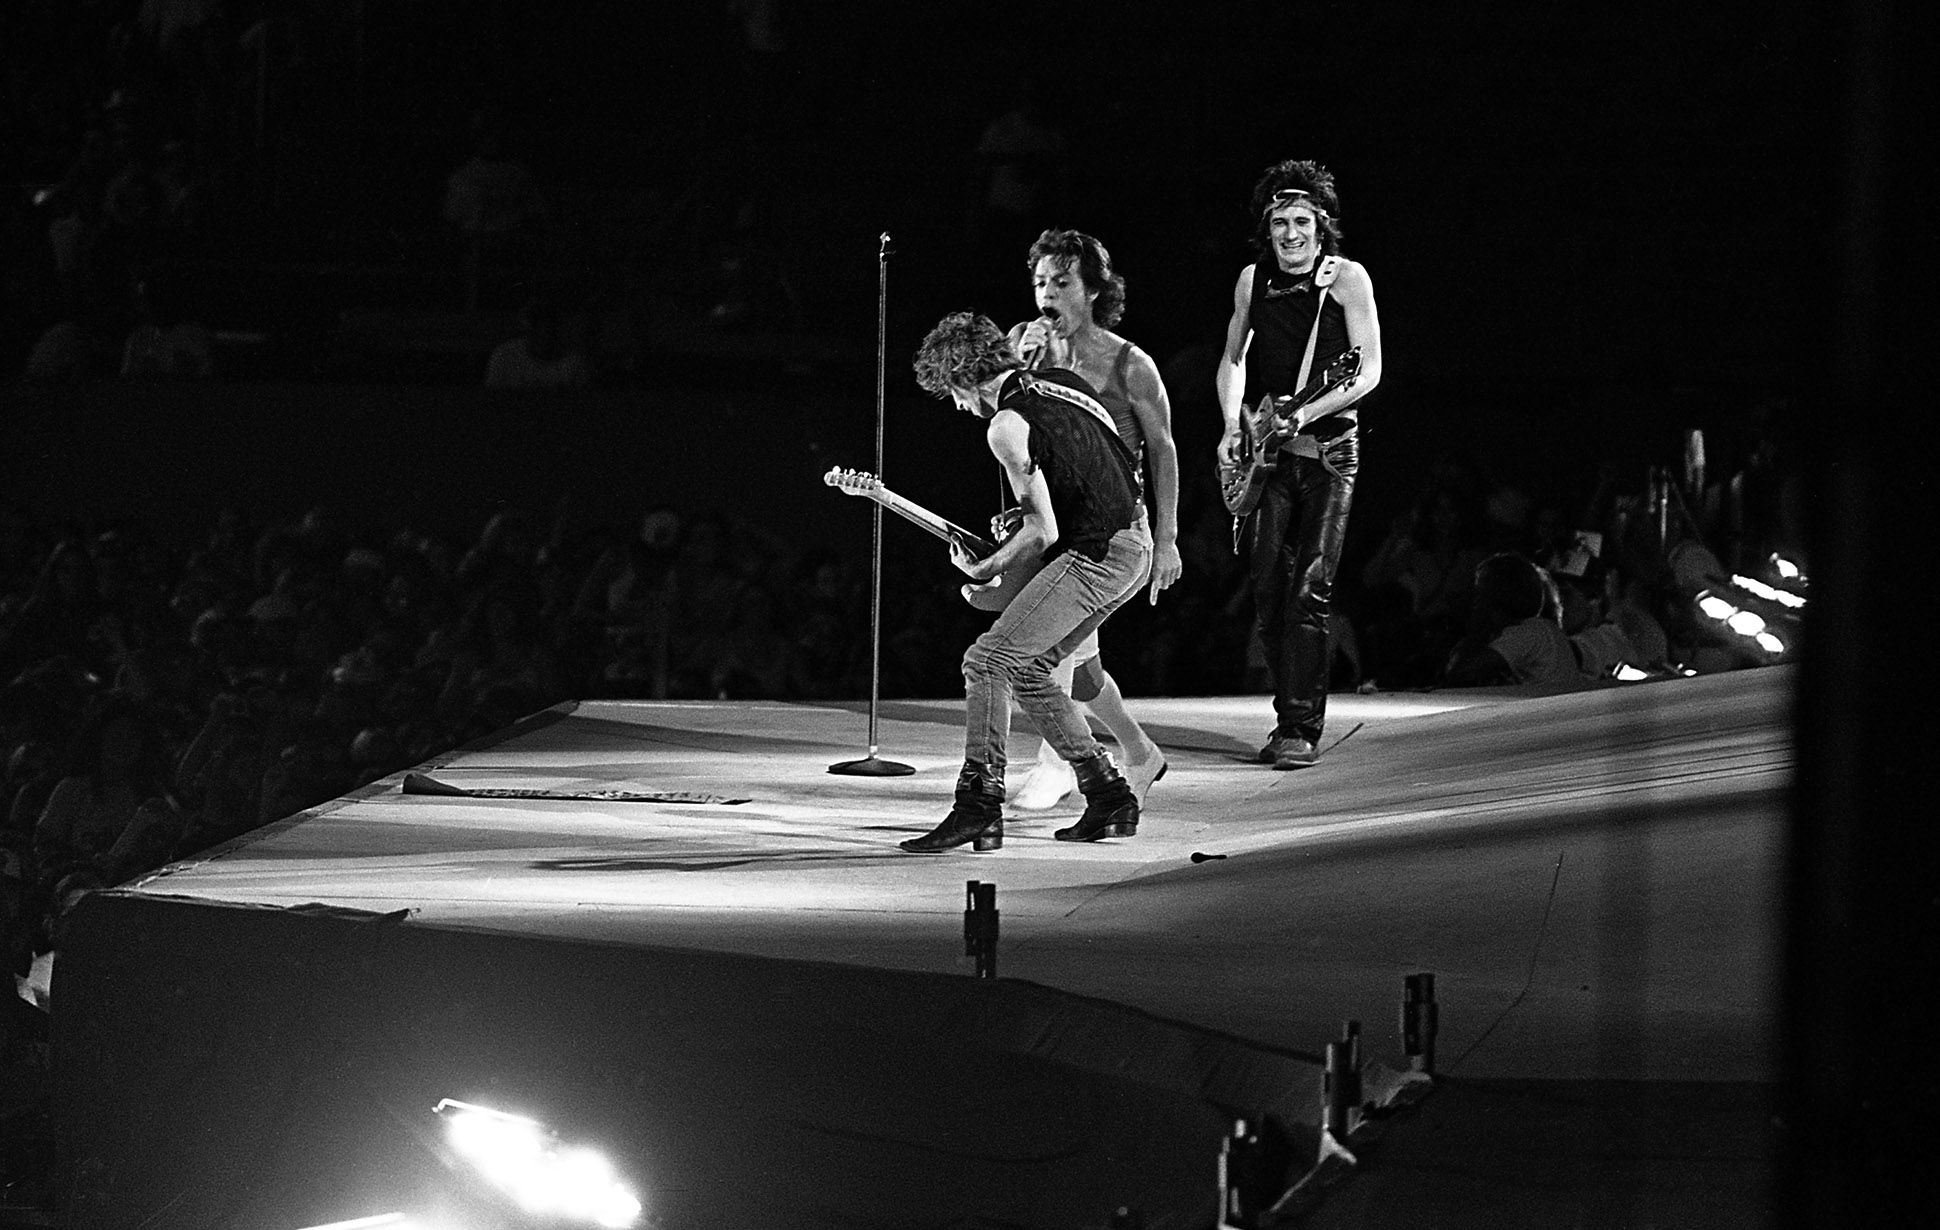 The Rolling Stones 1981 American Tour Included Two Shows On Oct 9th And 11th At Los Angeles Memorial Coliseum